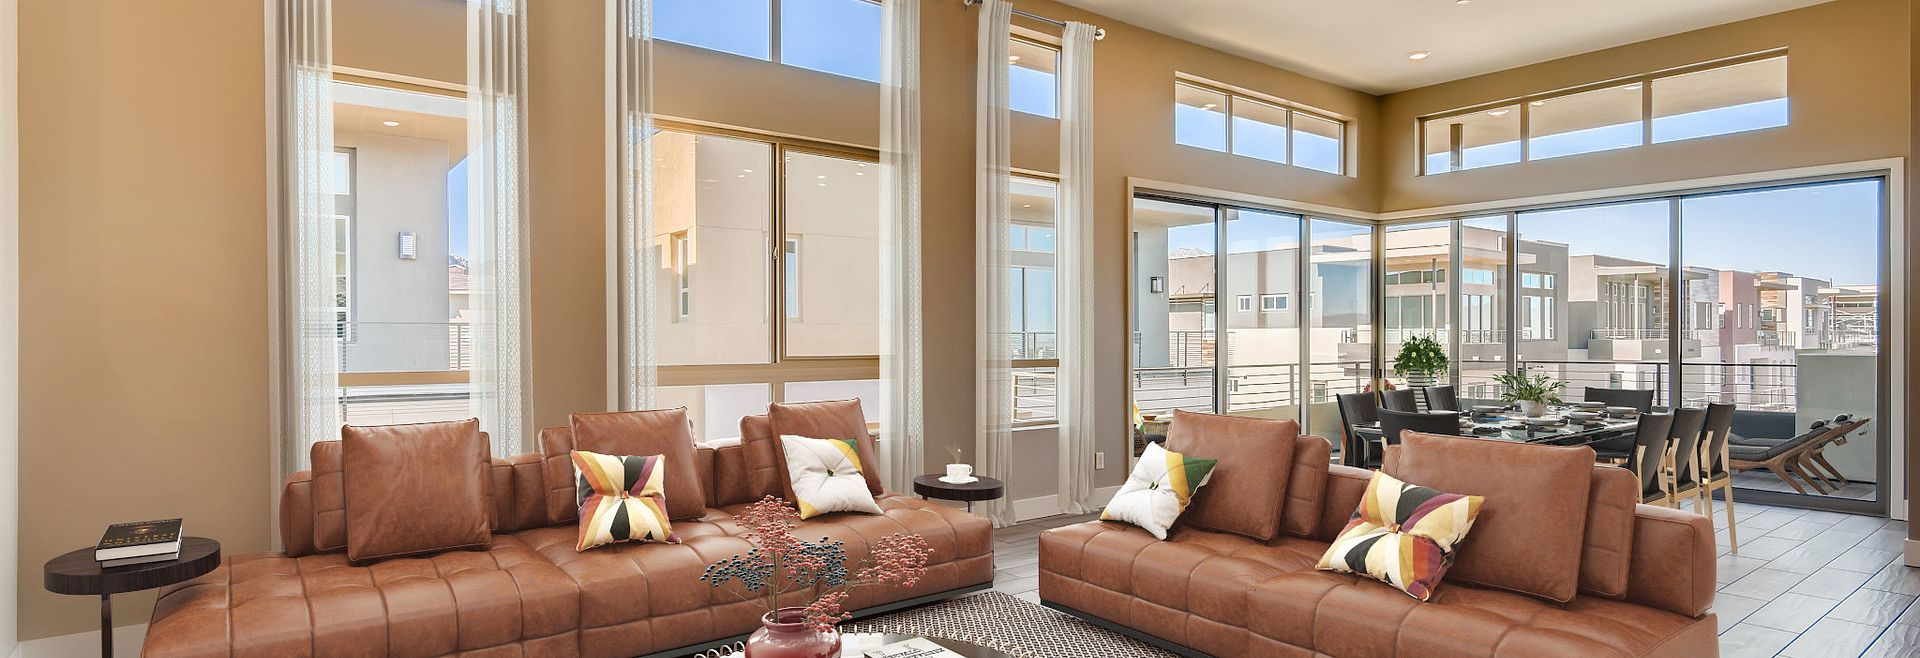 Living Area featured in the Apex By Shea Homes - Trilogy in Las Vegas, NV